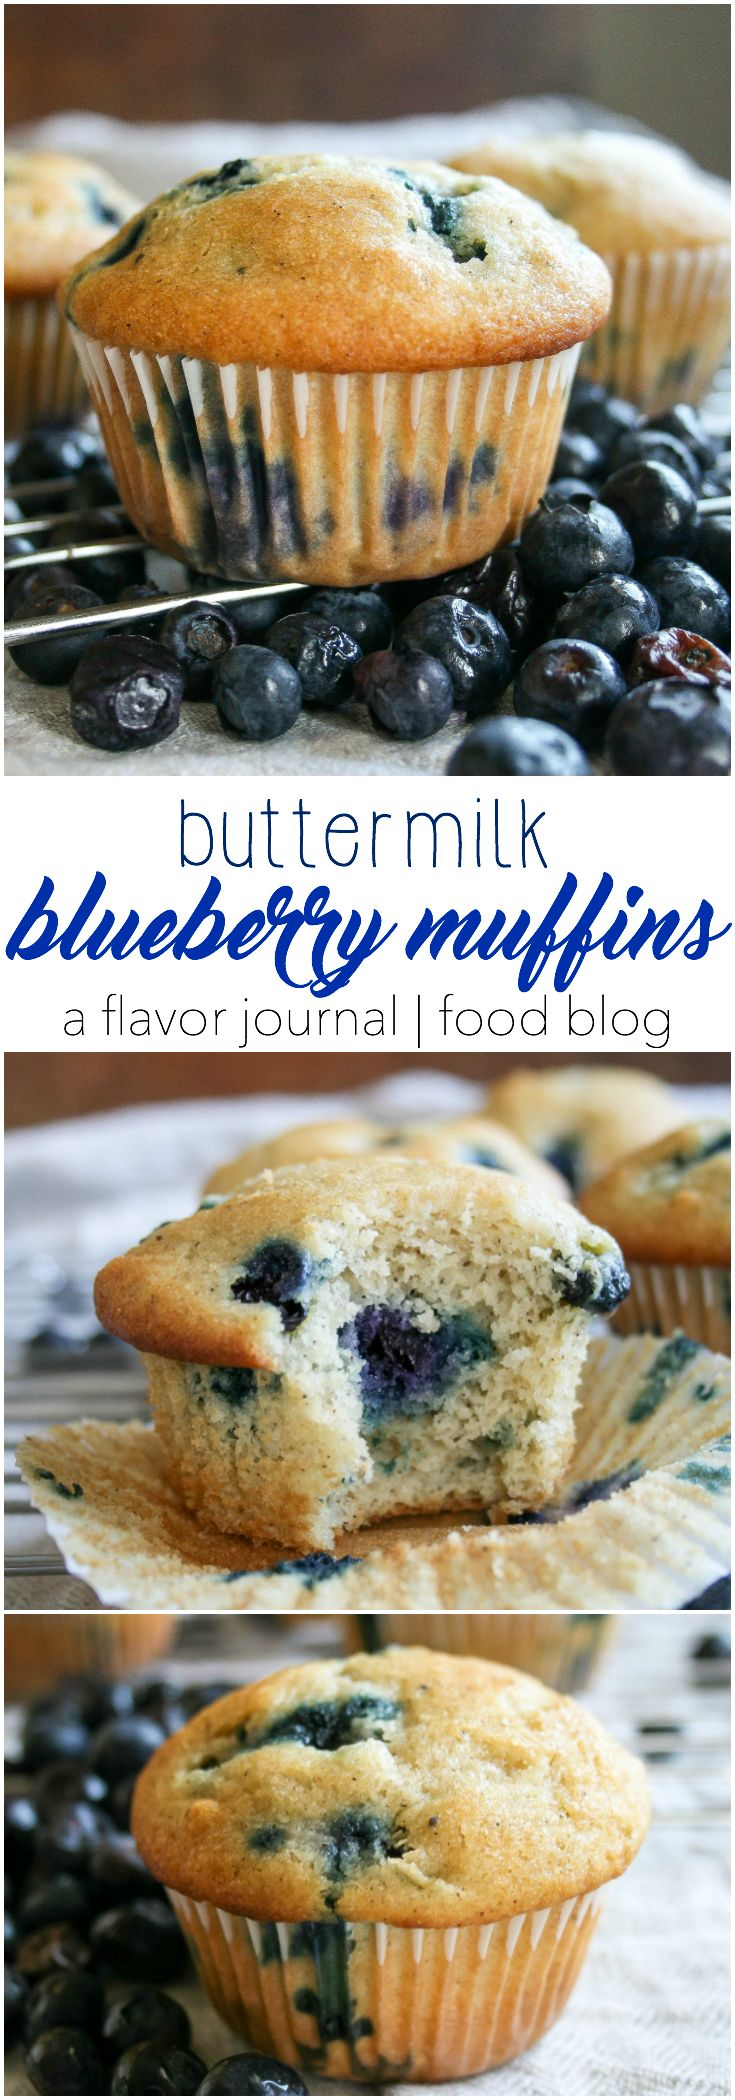 fluffy, warm, delicious blueberry muffins made with buttermilk! these are a classic breakfast or brunch MUST, and they couldn't be easier to make! buttermilk blueberry muffins | a flavor journal.  buttermilk blueberry muffins http://aflavorjournal.com/buttermilk-blueberry-muffins/